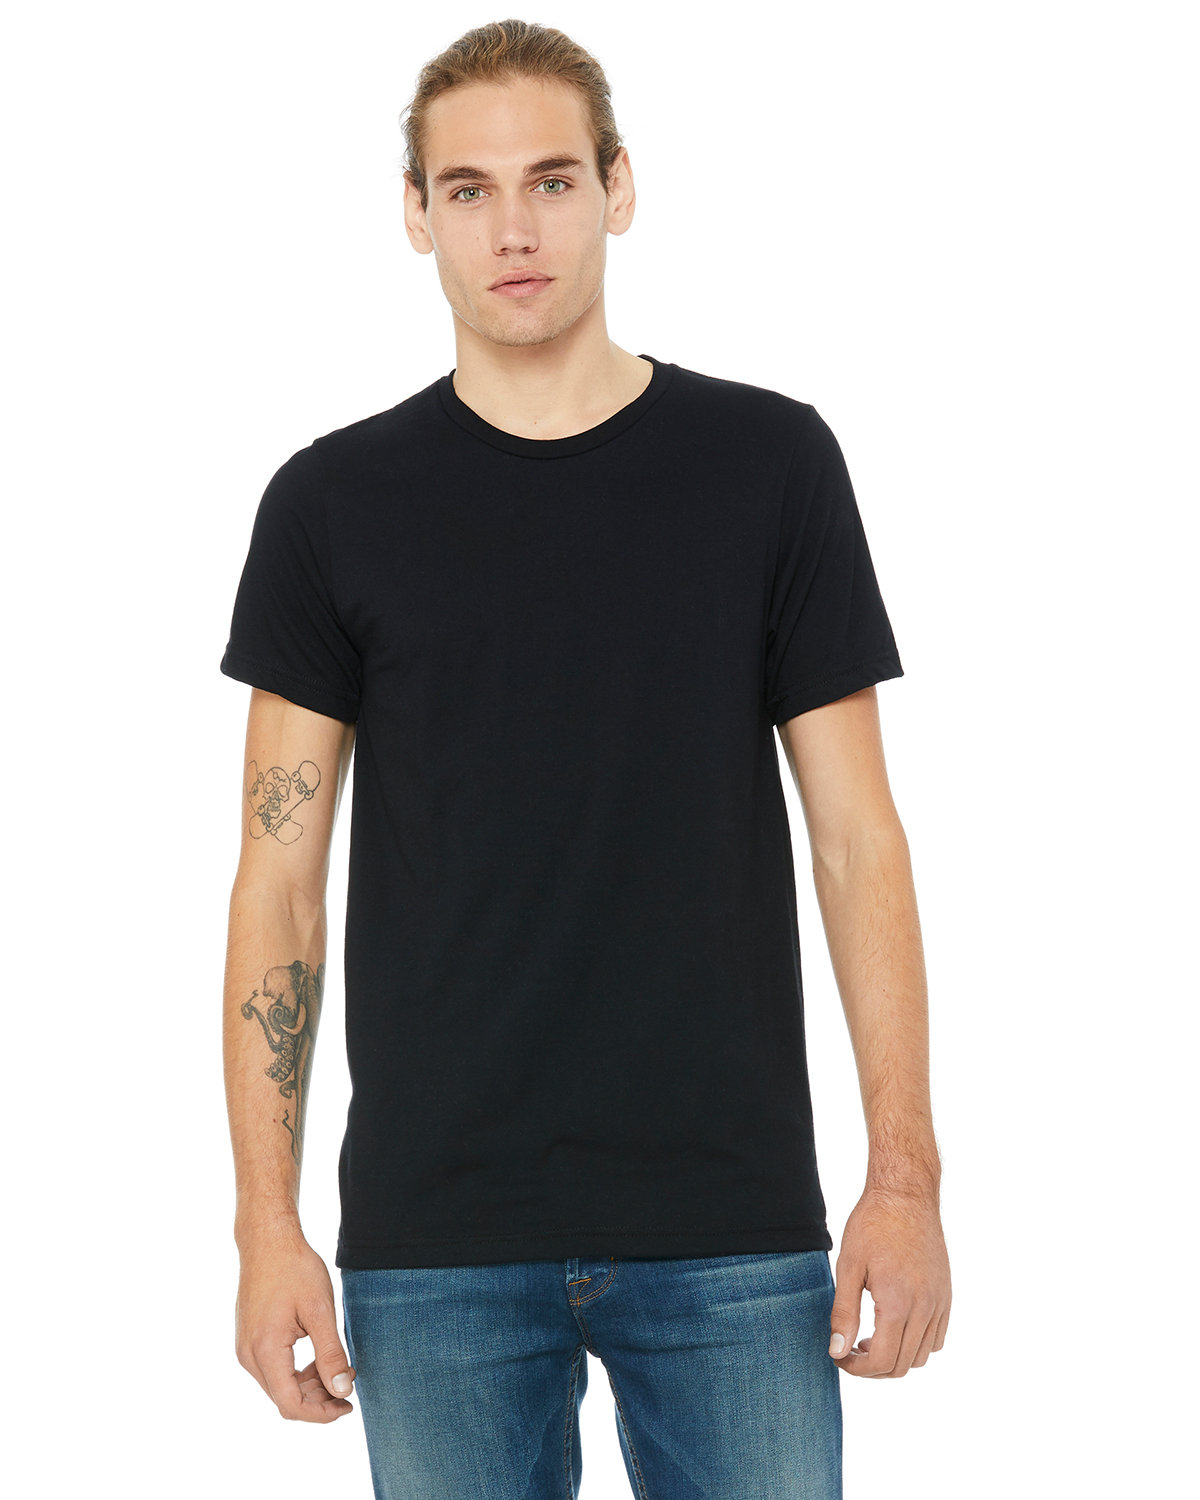 Bella + Canvas Unisex Made In The USA Jersey T-Shirt BLACK